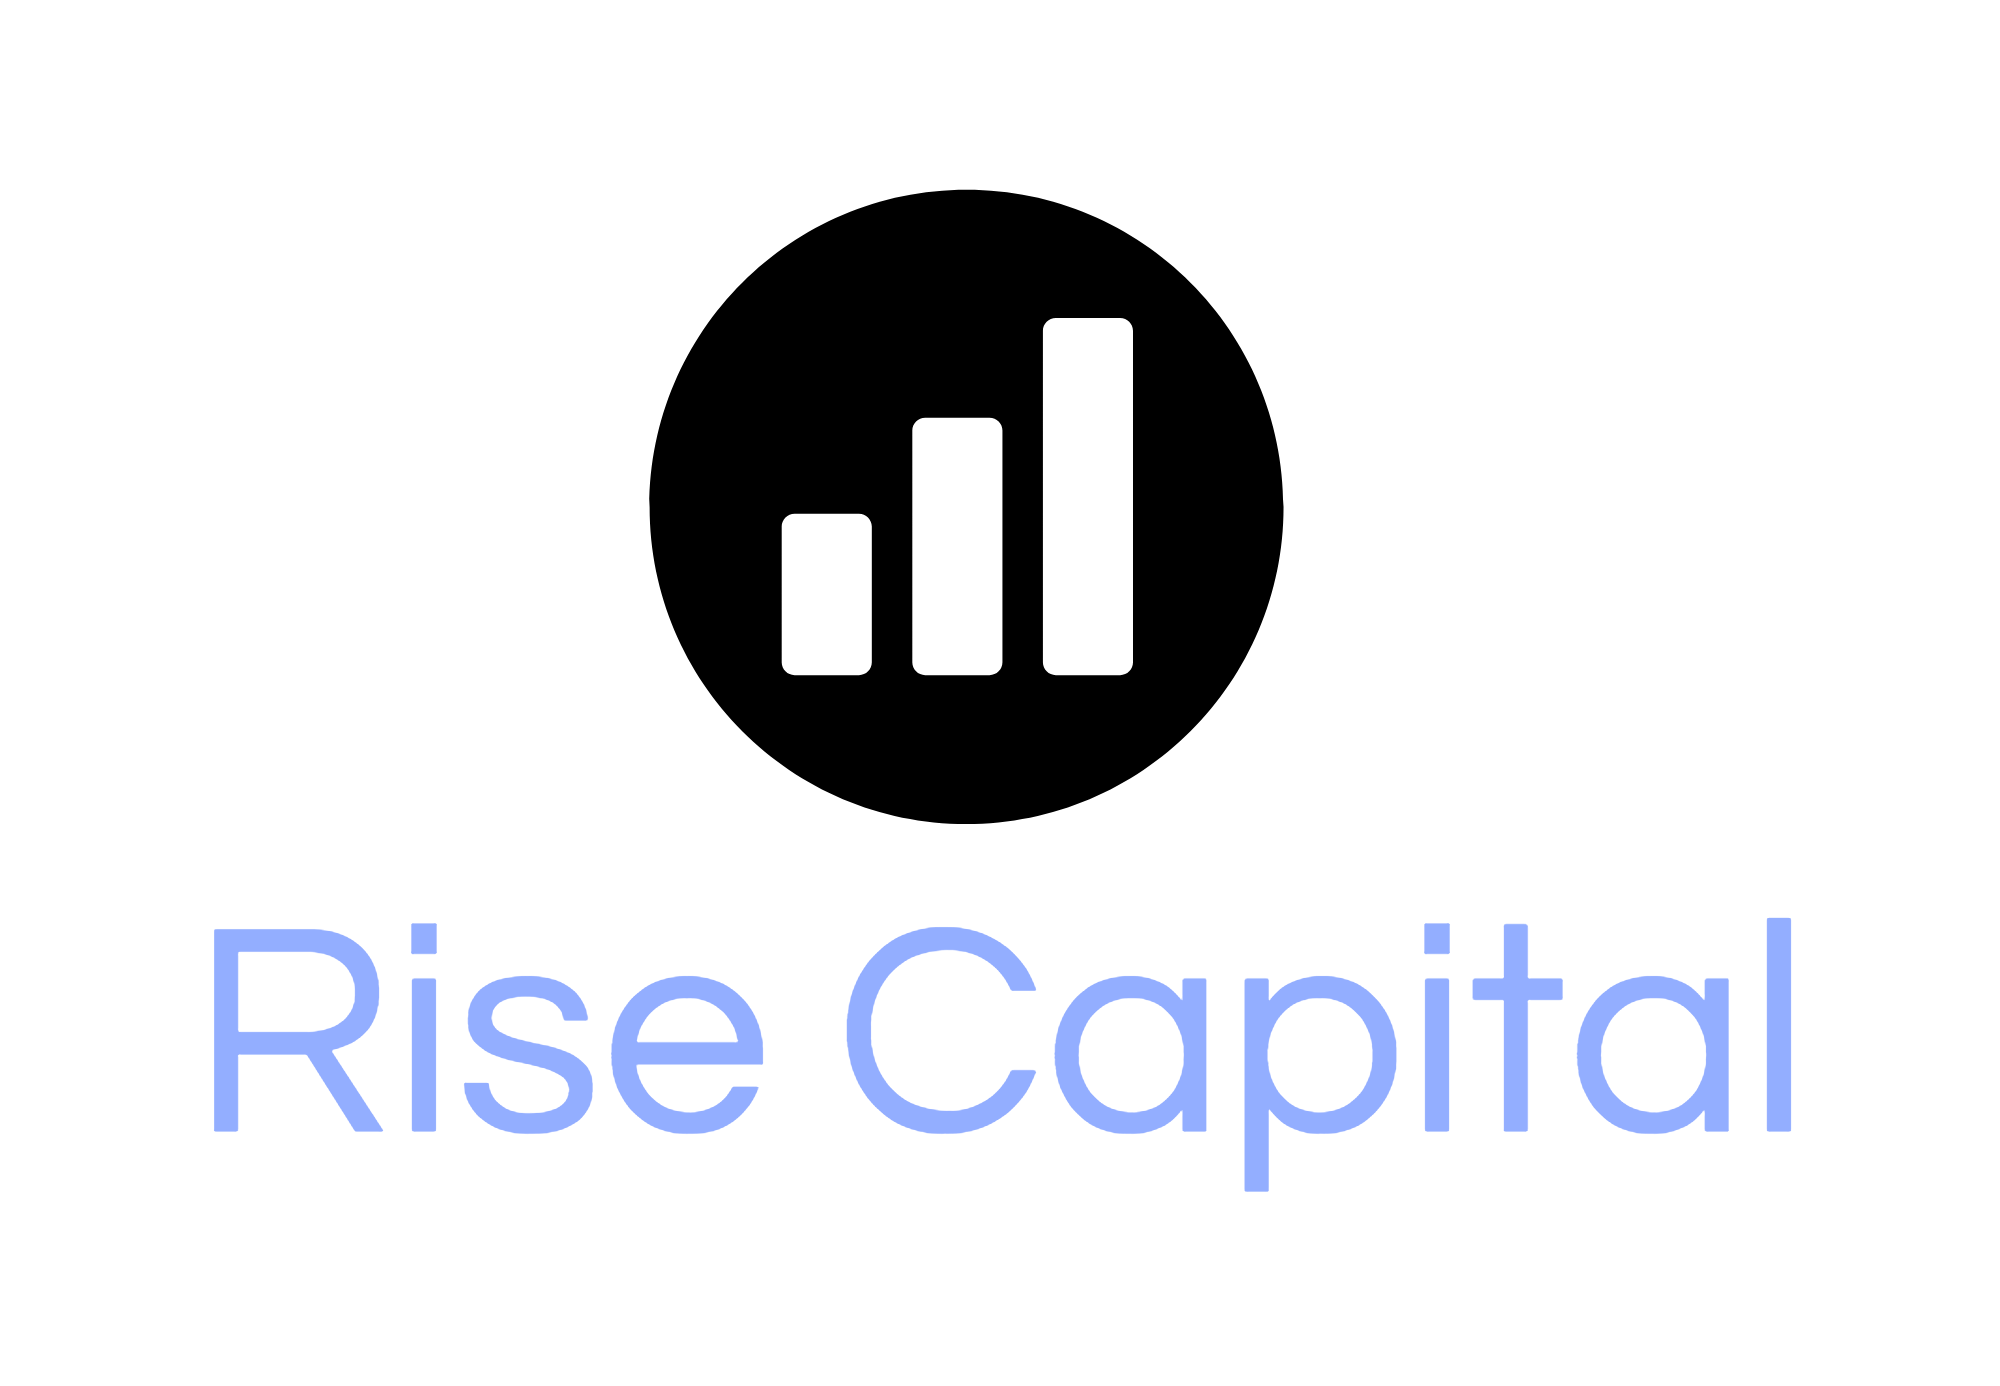 Copy of Copy of Rise Capital